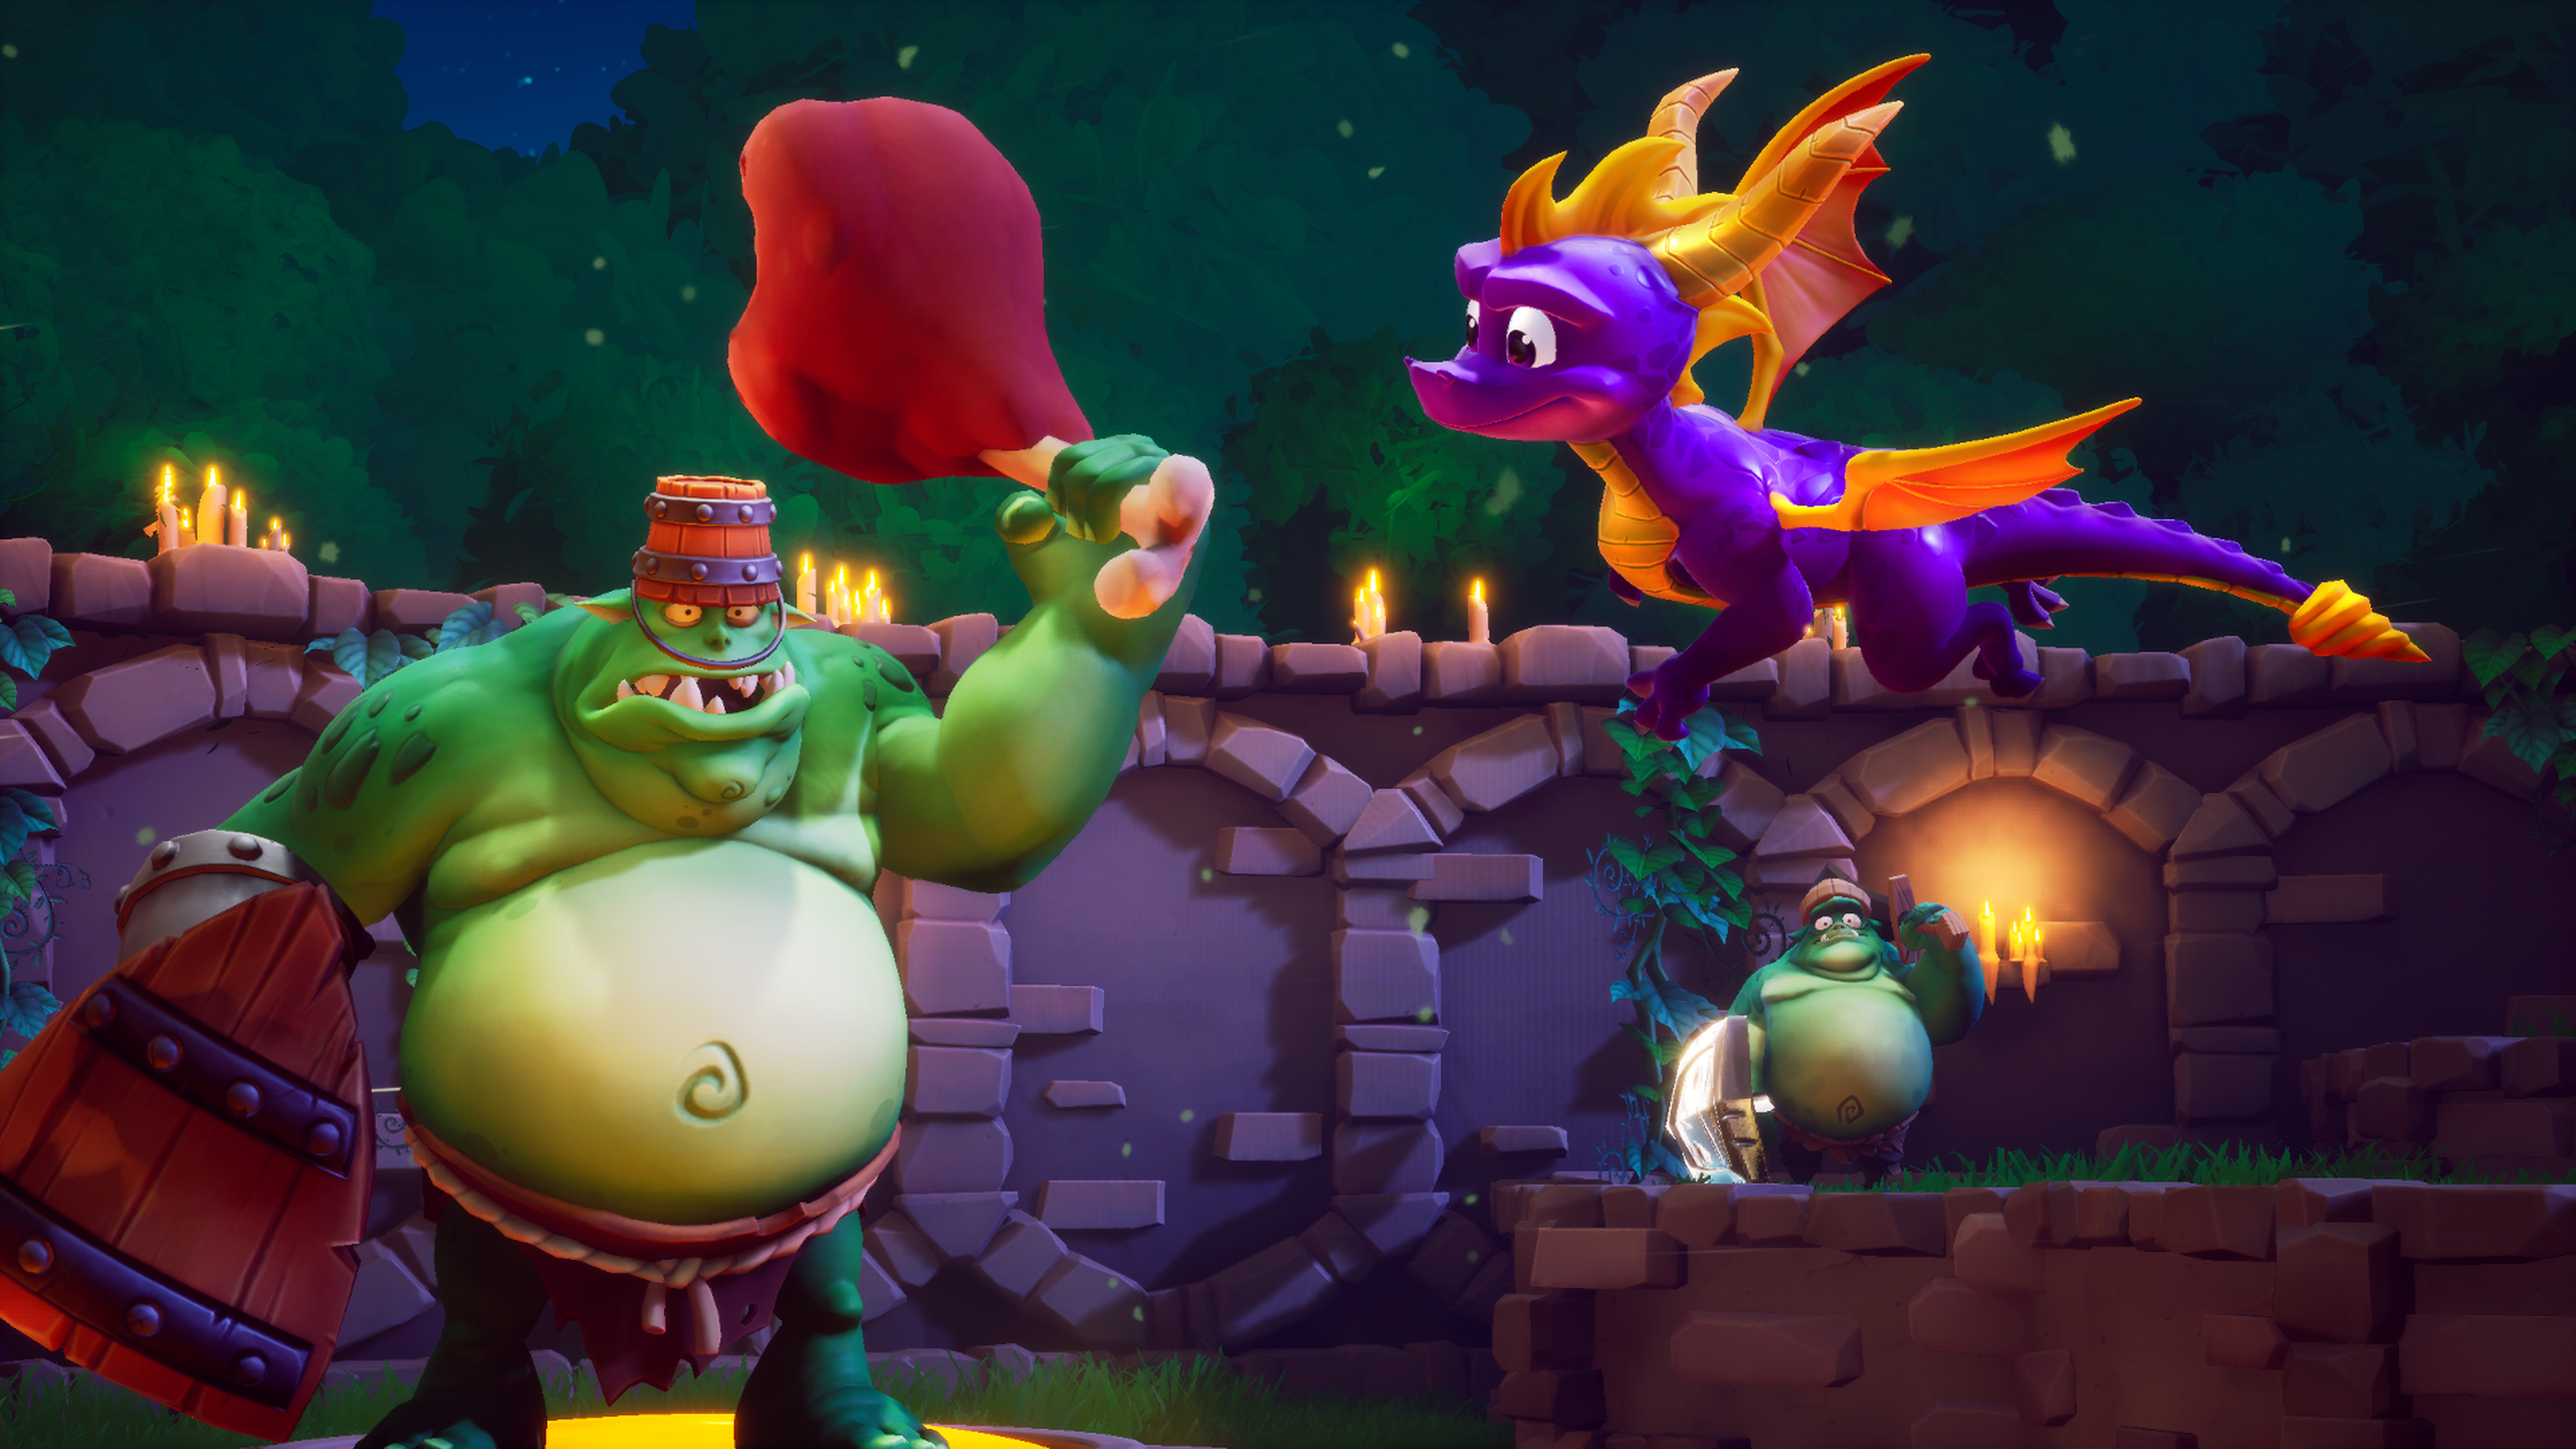 Spyro Activision Games #Activision #Holiday #HolidayGiftGuide #technology #videogames #ad